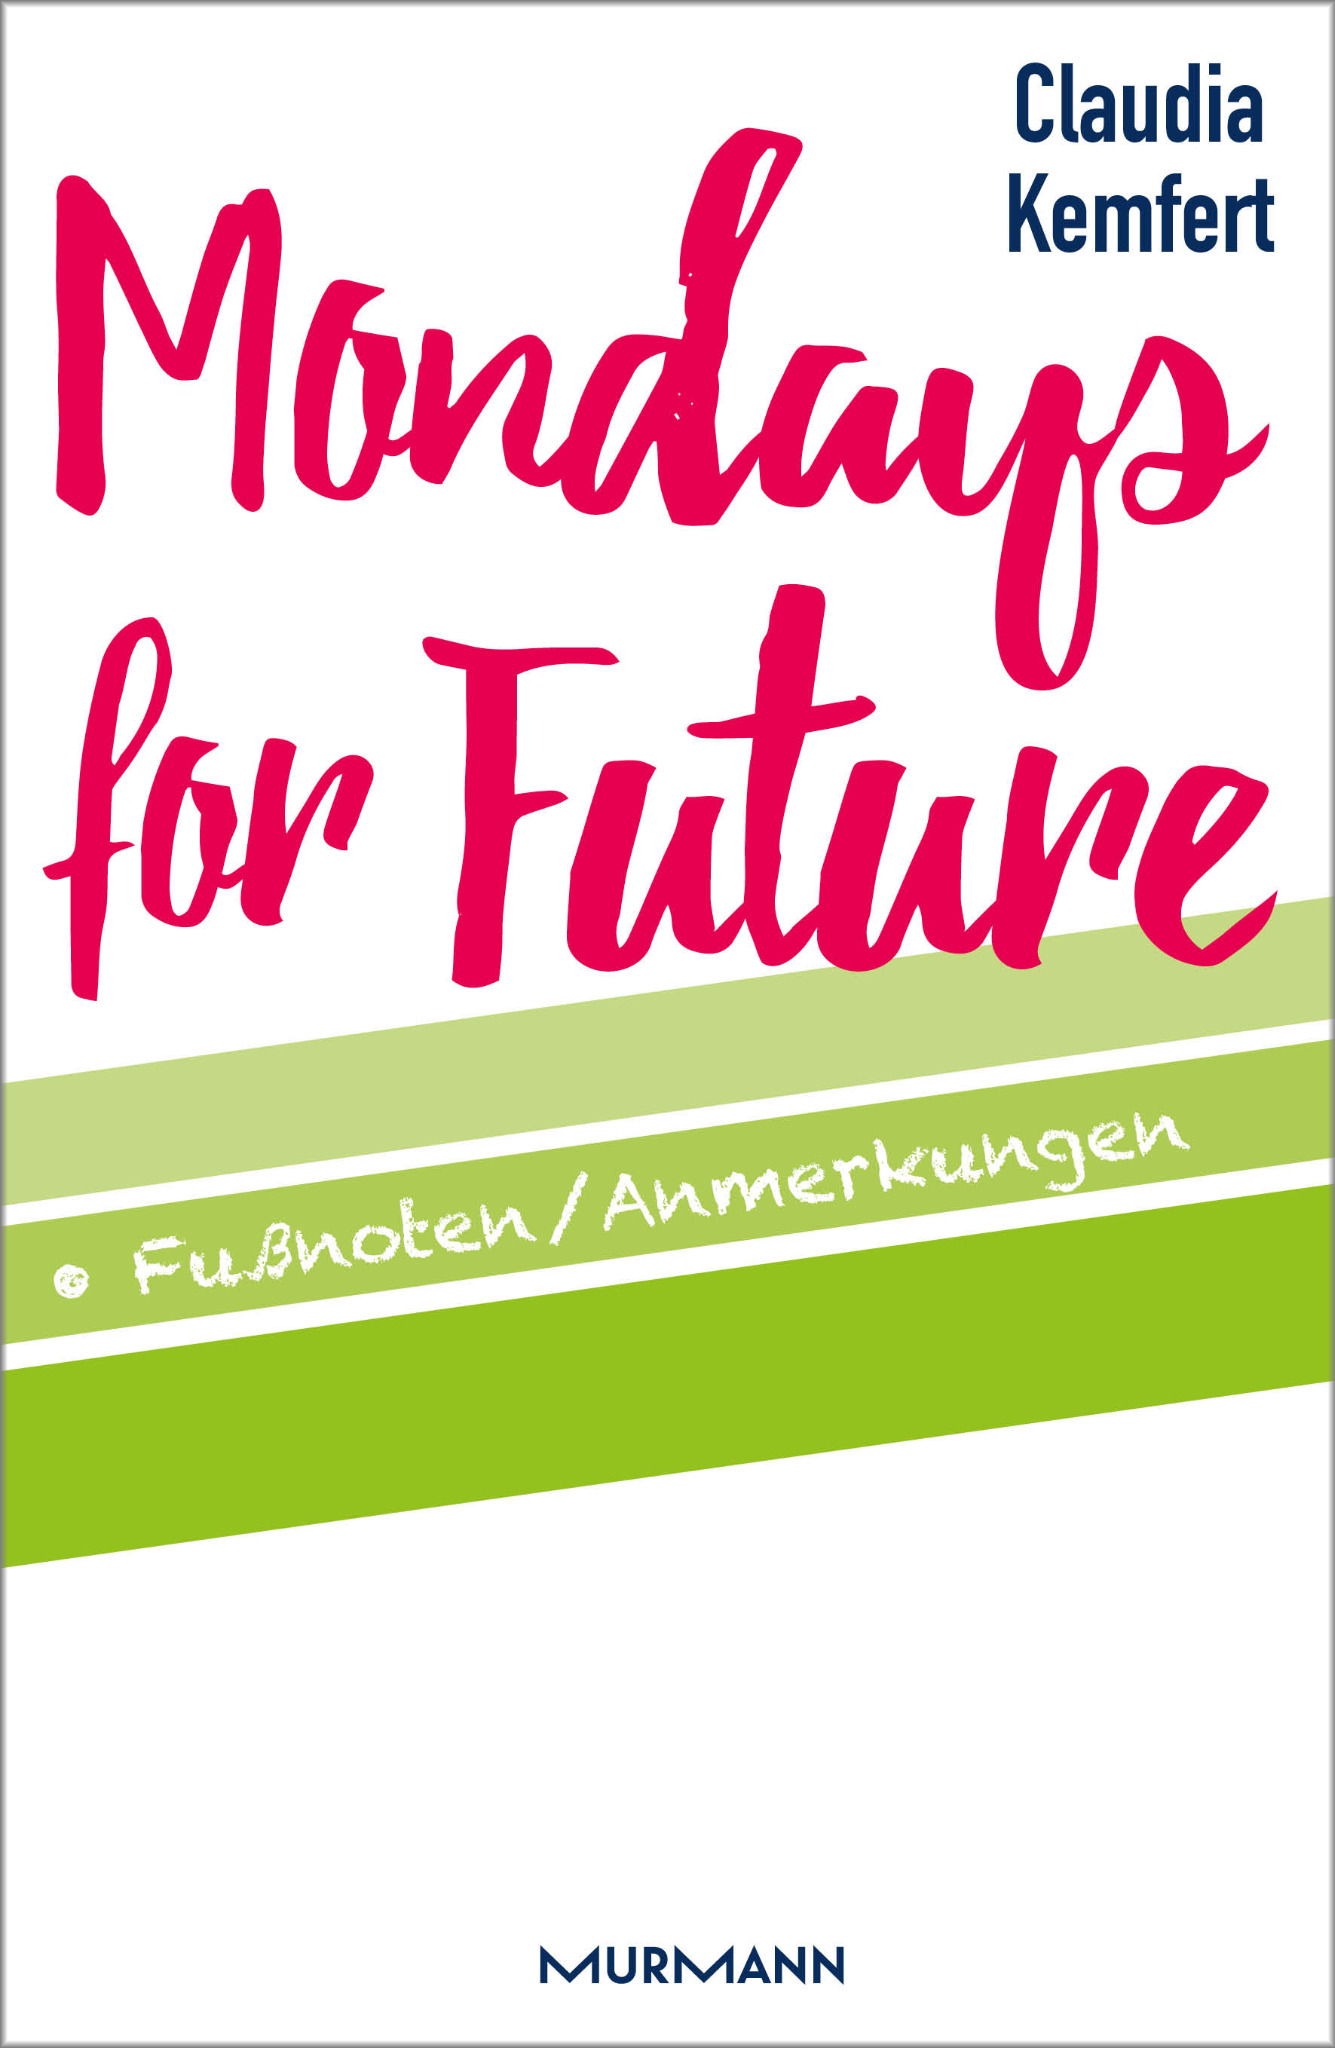 Fussnoten / Mondays for Future / Claudia Kemfert